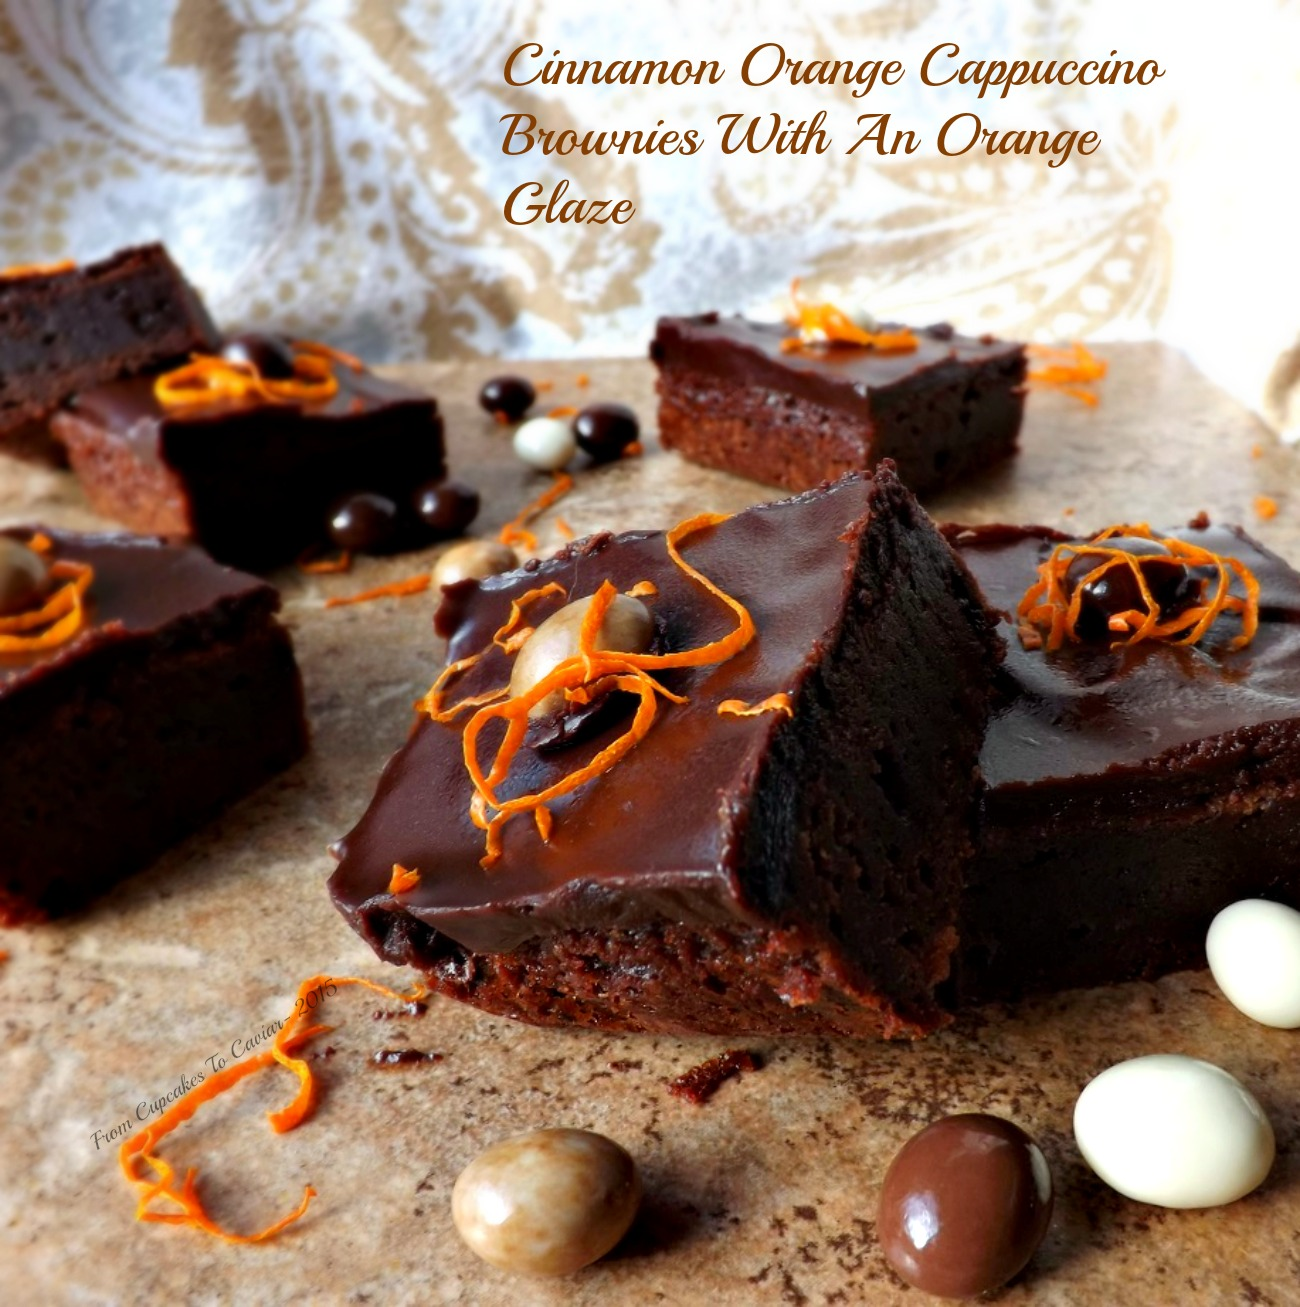 Cinnamon Orange Cappuccino Brownies With An Orange Glaze